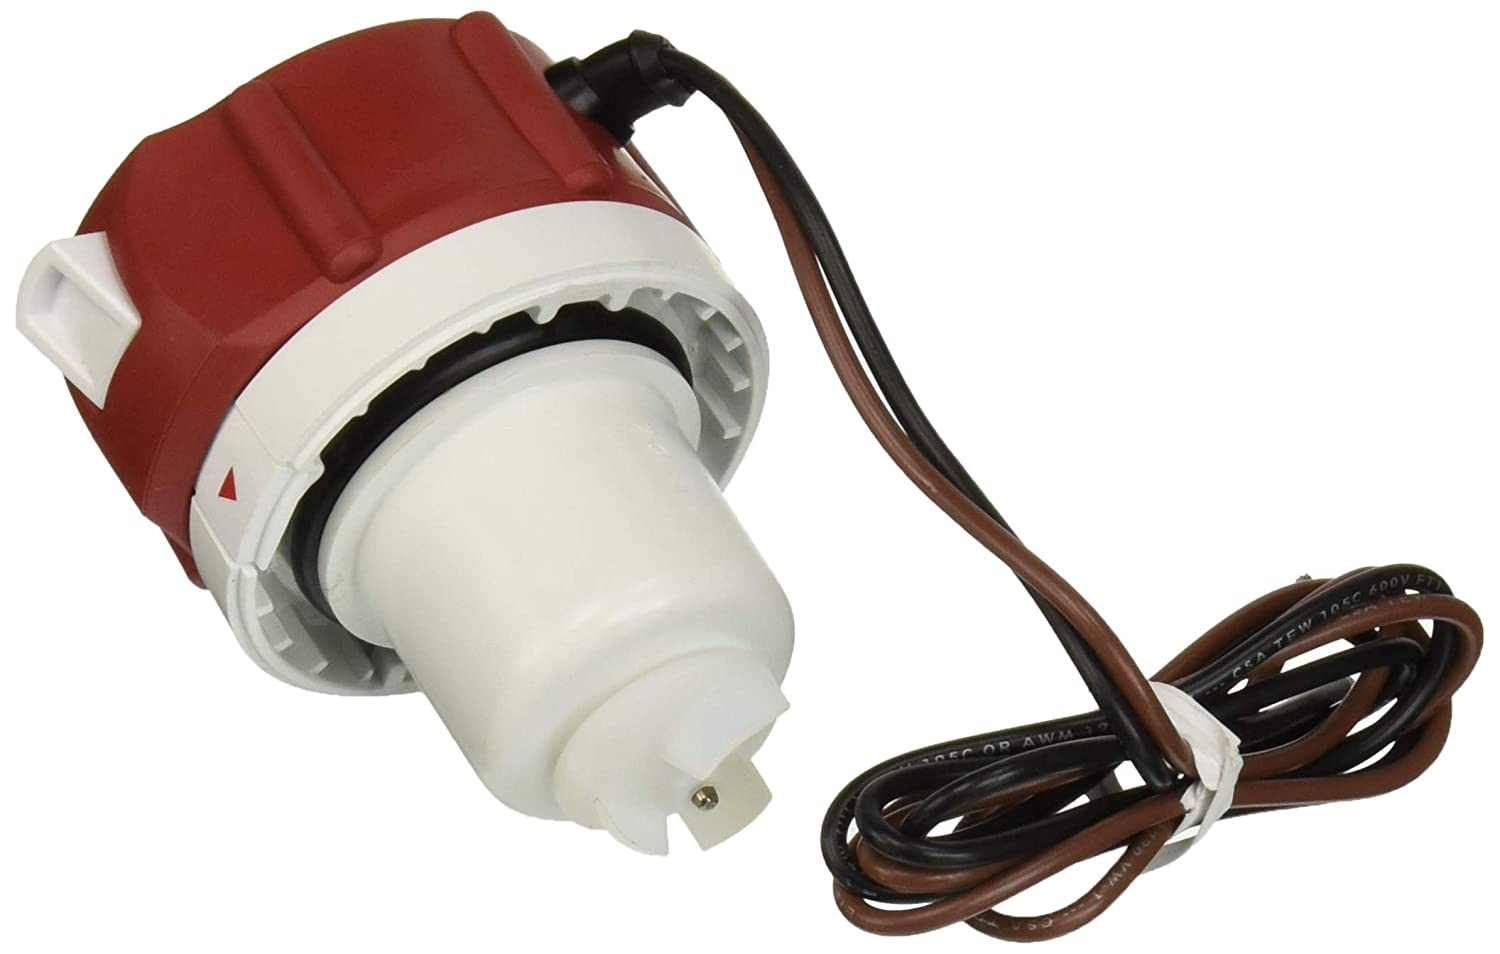 Jabsco Rule Marine Rule Replacement Motor for Tournament Series Livewell Pumps